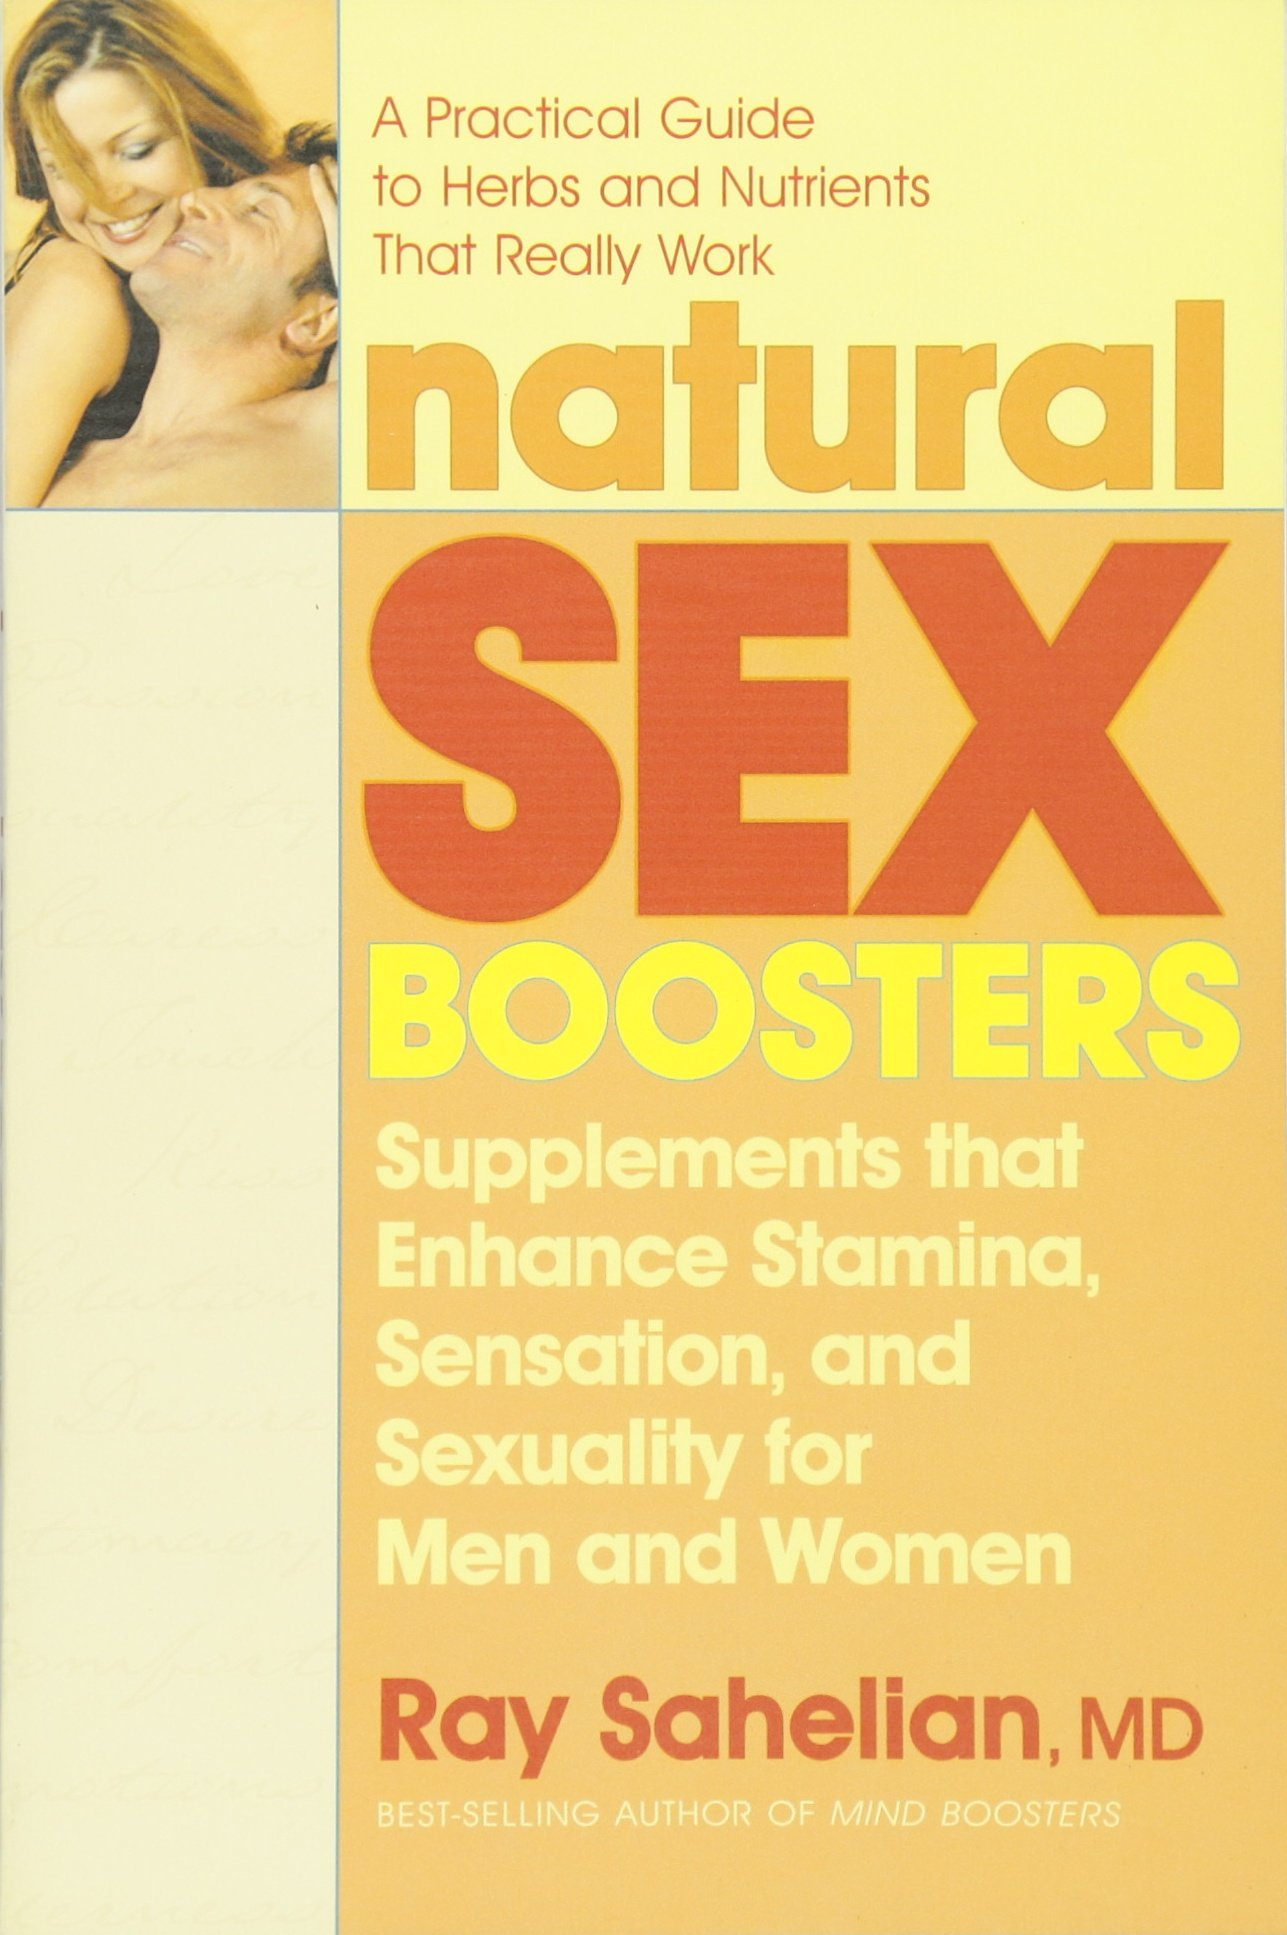 Boosters natural sex